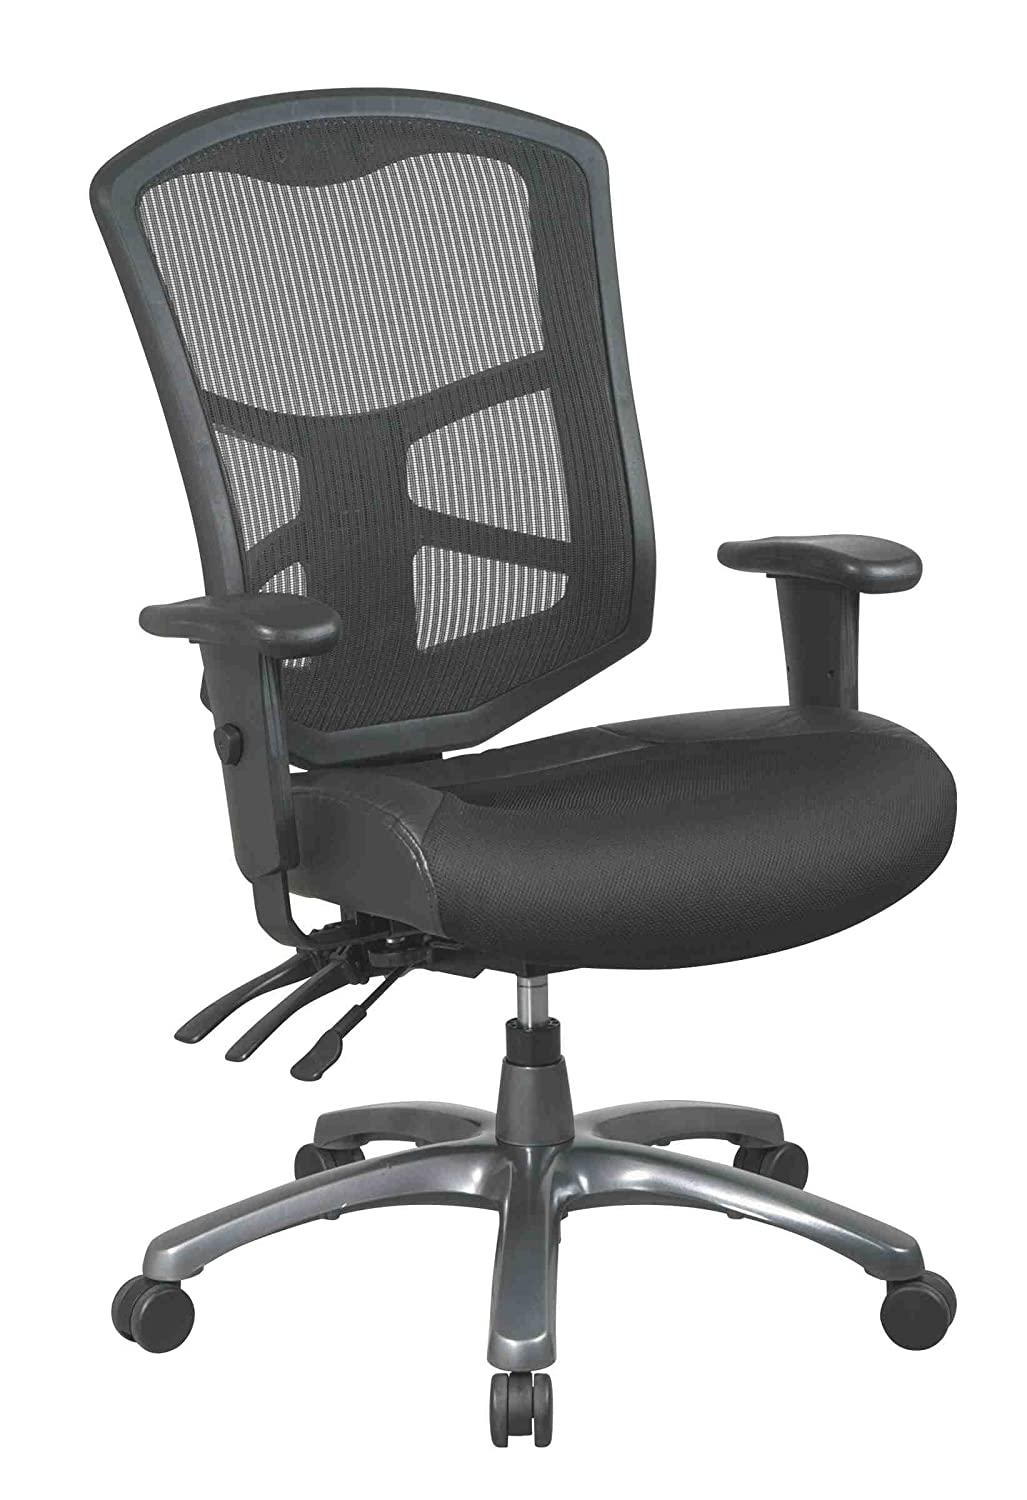 Office Star ProGrid Back Leather and Mesh Seat Chair with Titanium Finish Base, Dual Function Control and 2-Way Adjustment Arms new pu leather high back desk office chair executive ergonomic computer task hw50277